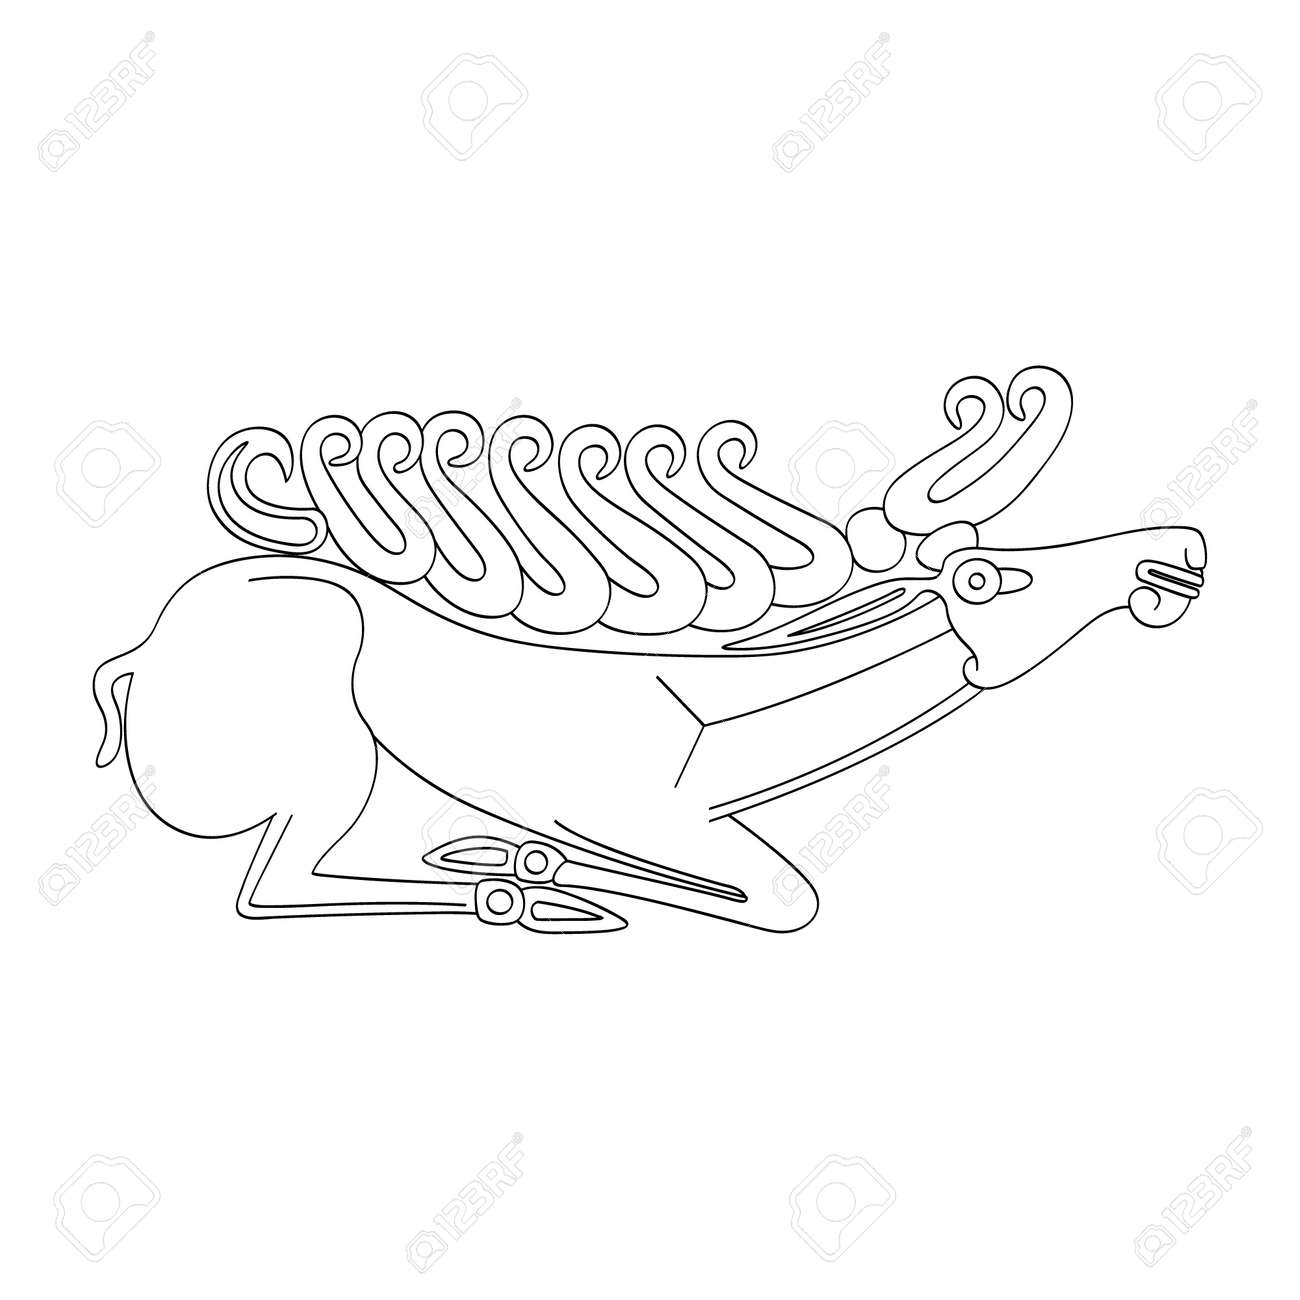 vector monochrome icon with ancient Scythian art. Plaque with animal motifs for your project - 164658281